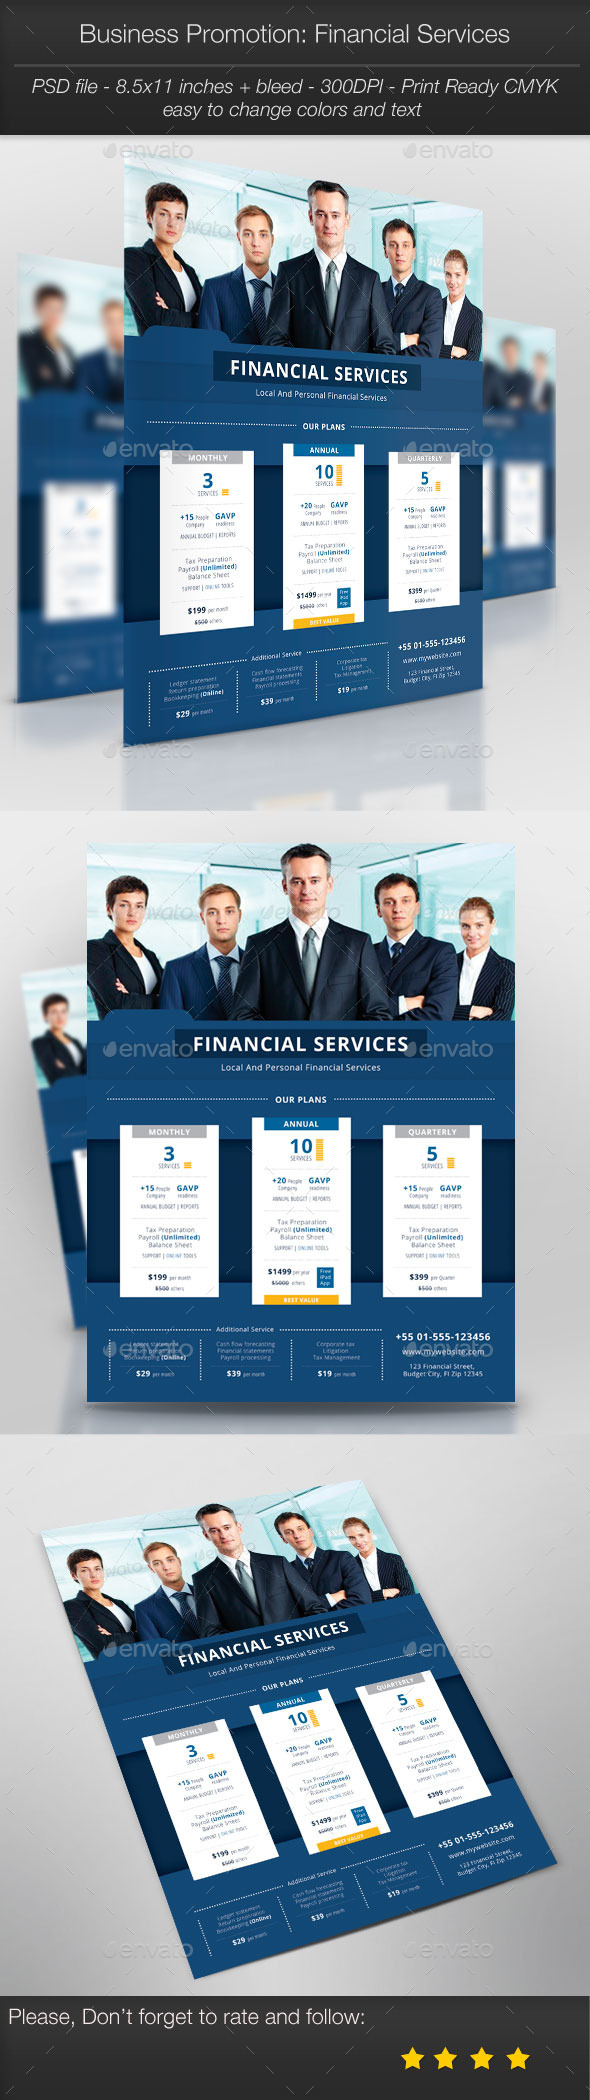 GraphicRiver Business Promotion Financial Services 10307352